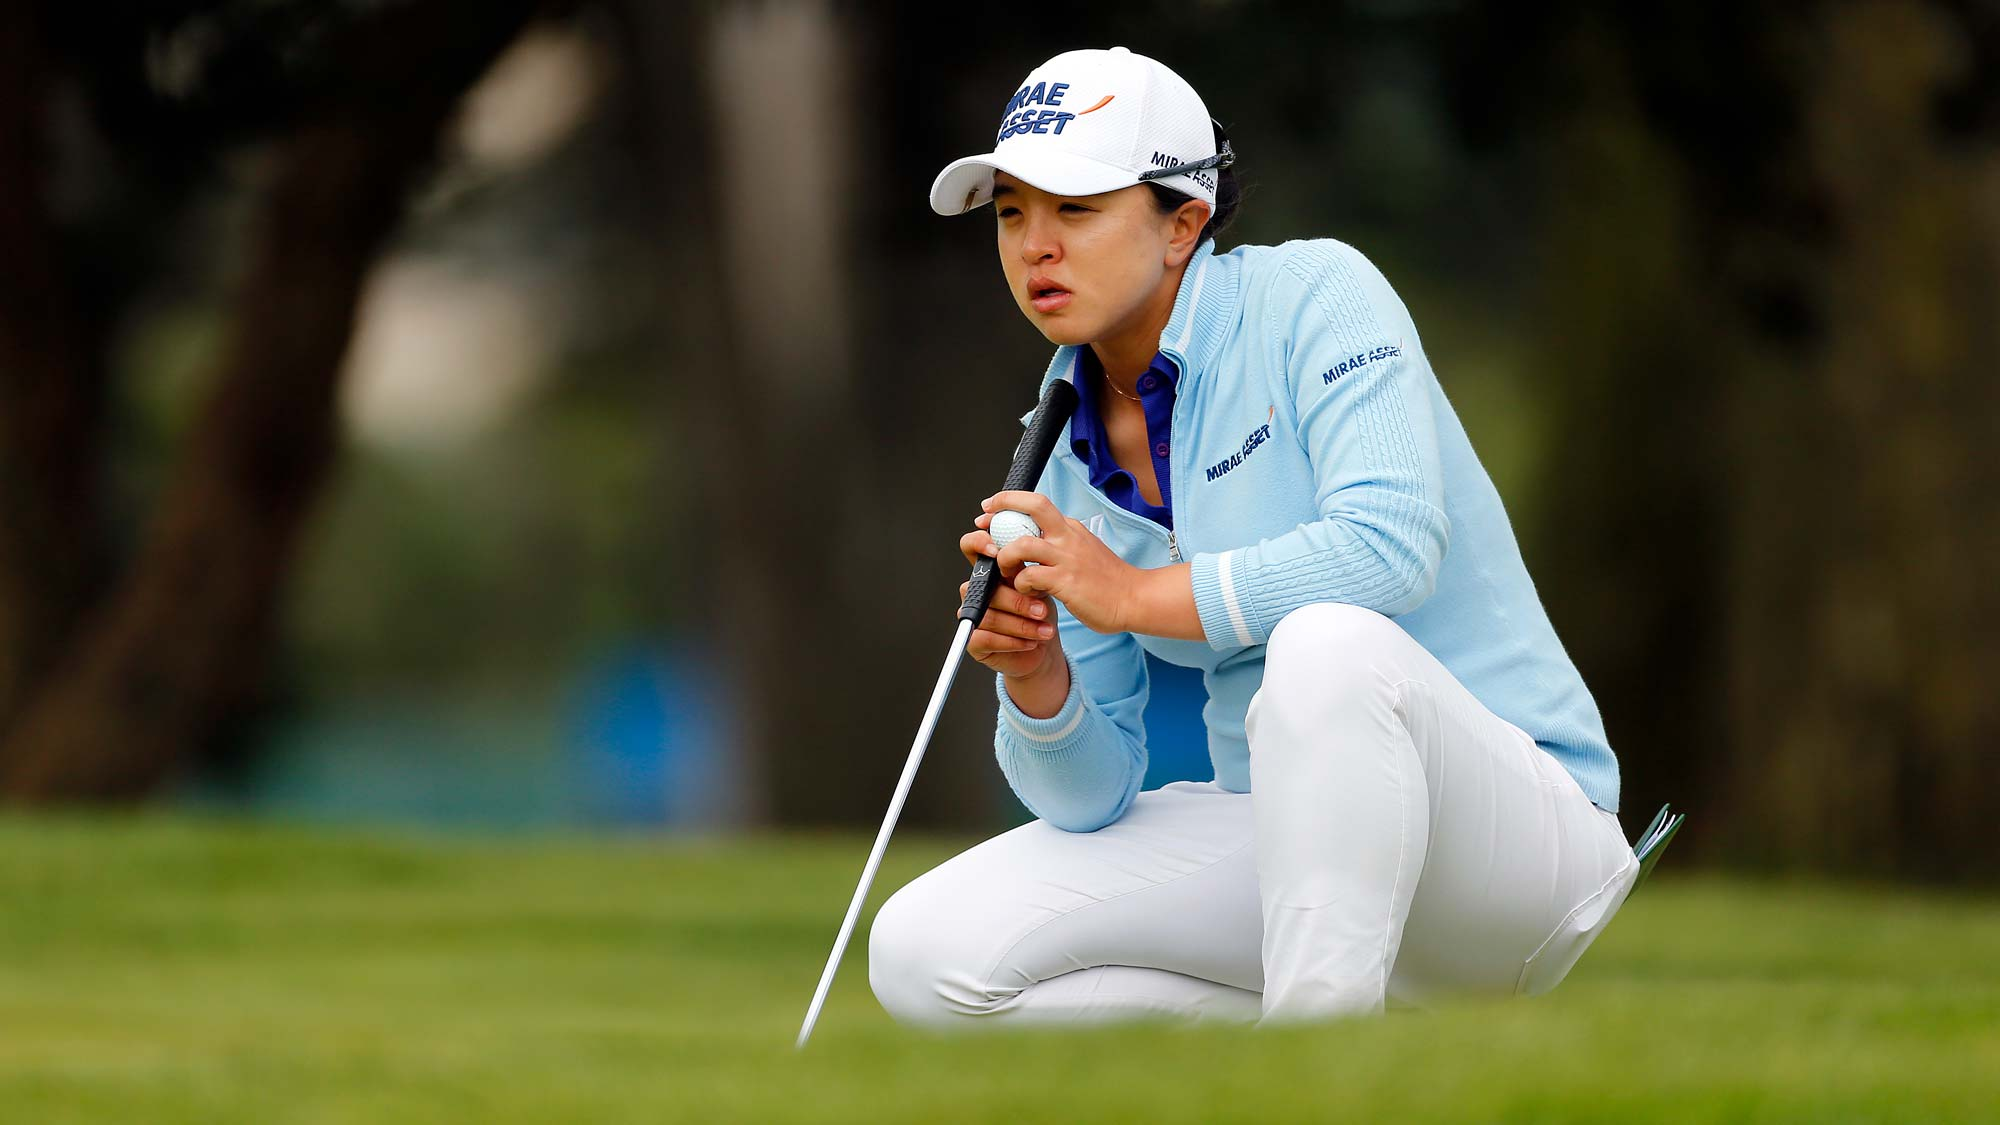 Sei Young Kim of South Korea lines up a putt on the 10th hole during the third round of the LPGA Mediheal Championship